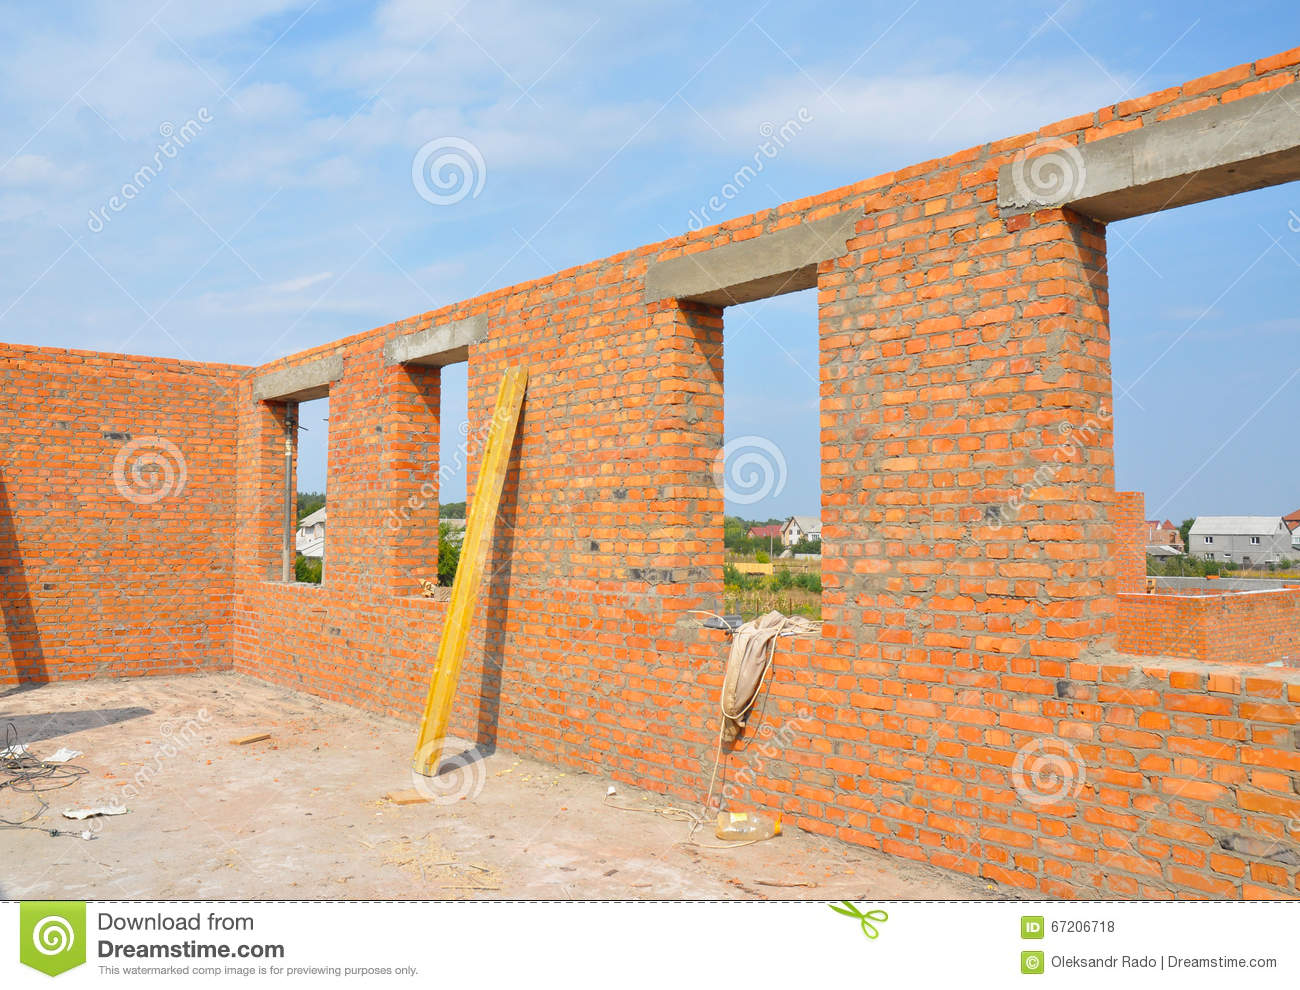 Int rieur d 39 une maison non finie de brique rouge en construction photo stock image 67206718 for Construction maison brique